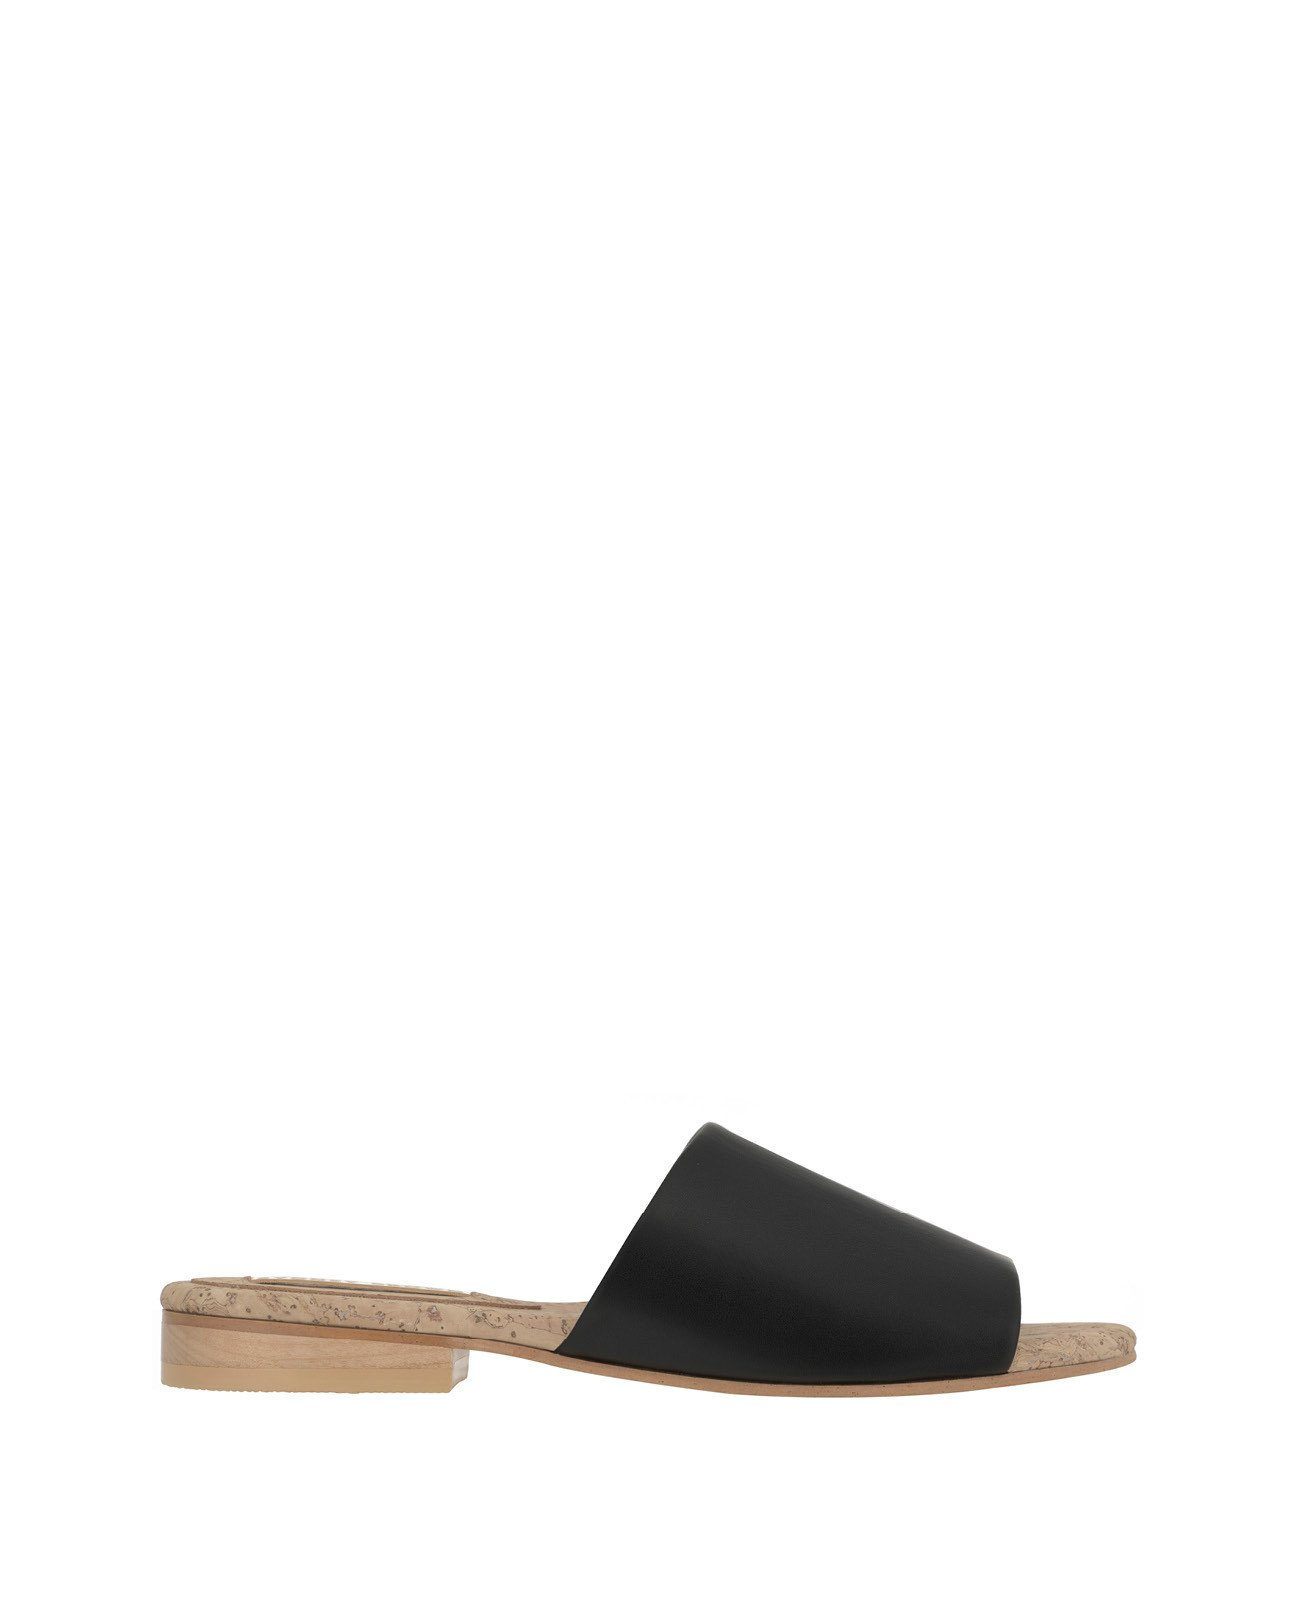 Flat slide in eco-friendly faux-nappa by Sydney Brown shoes. Vegan, cruelty-free, non-leather, sustainable & ethical